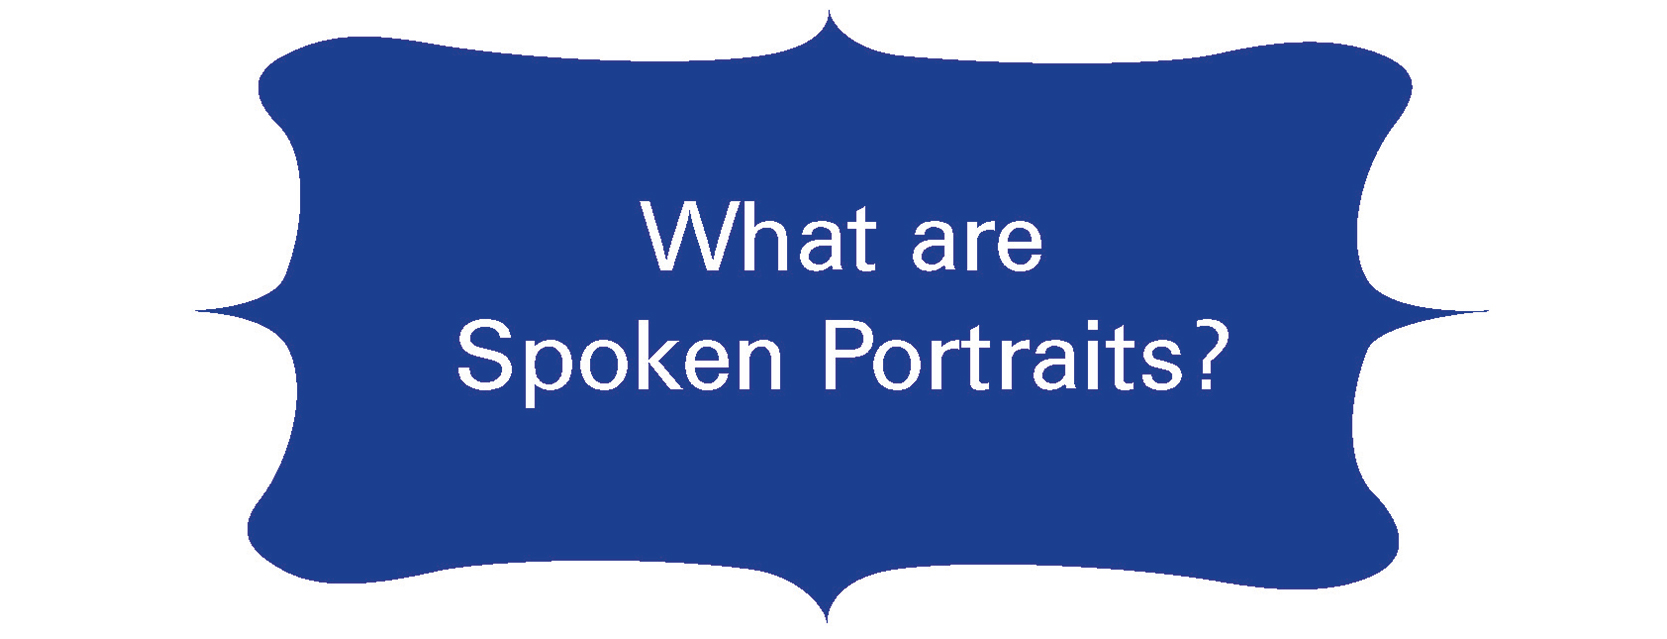 What are Spoken Portraits?